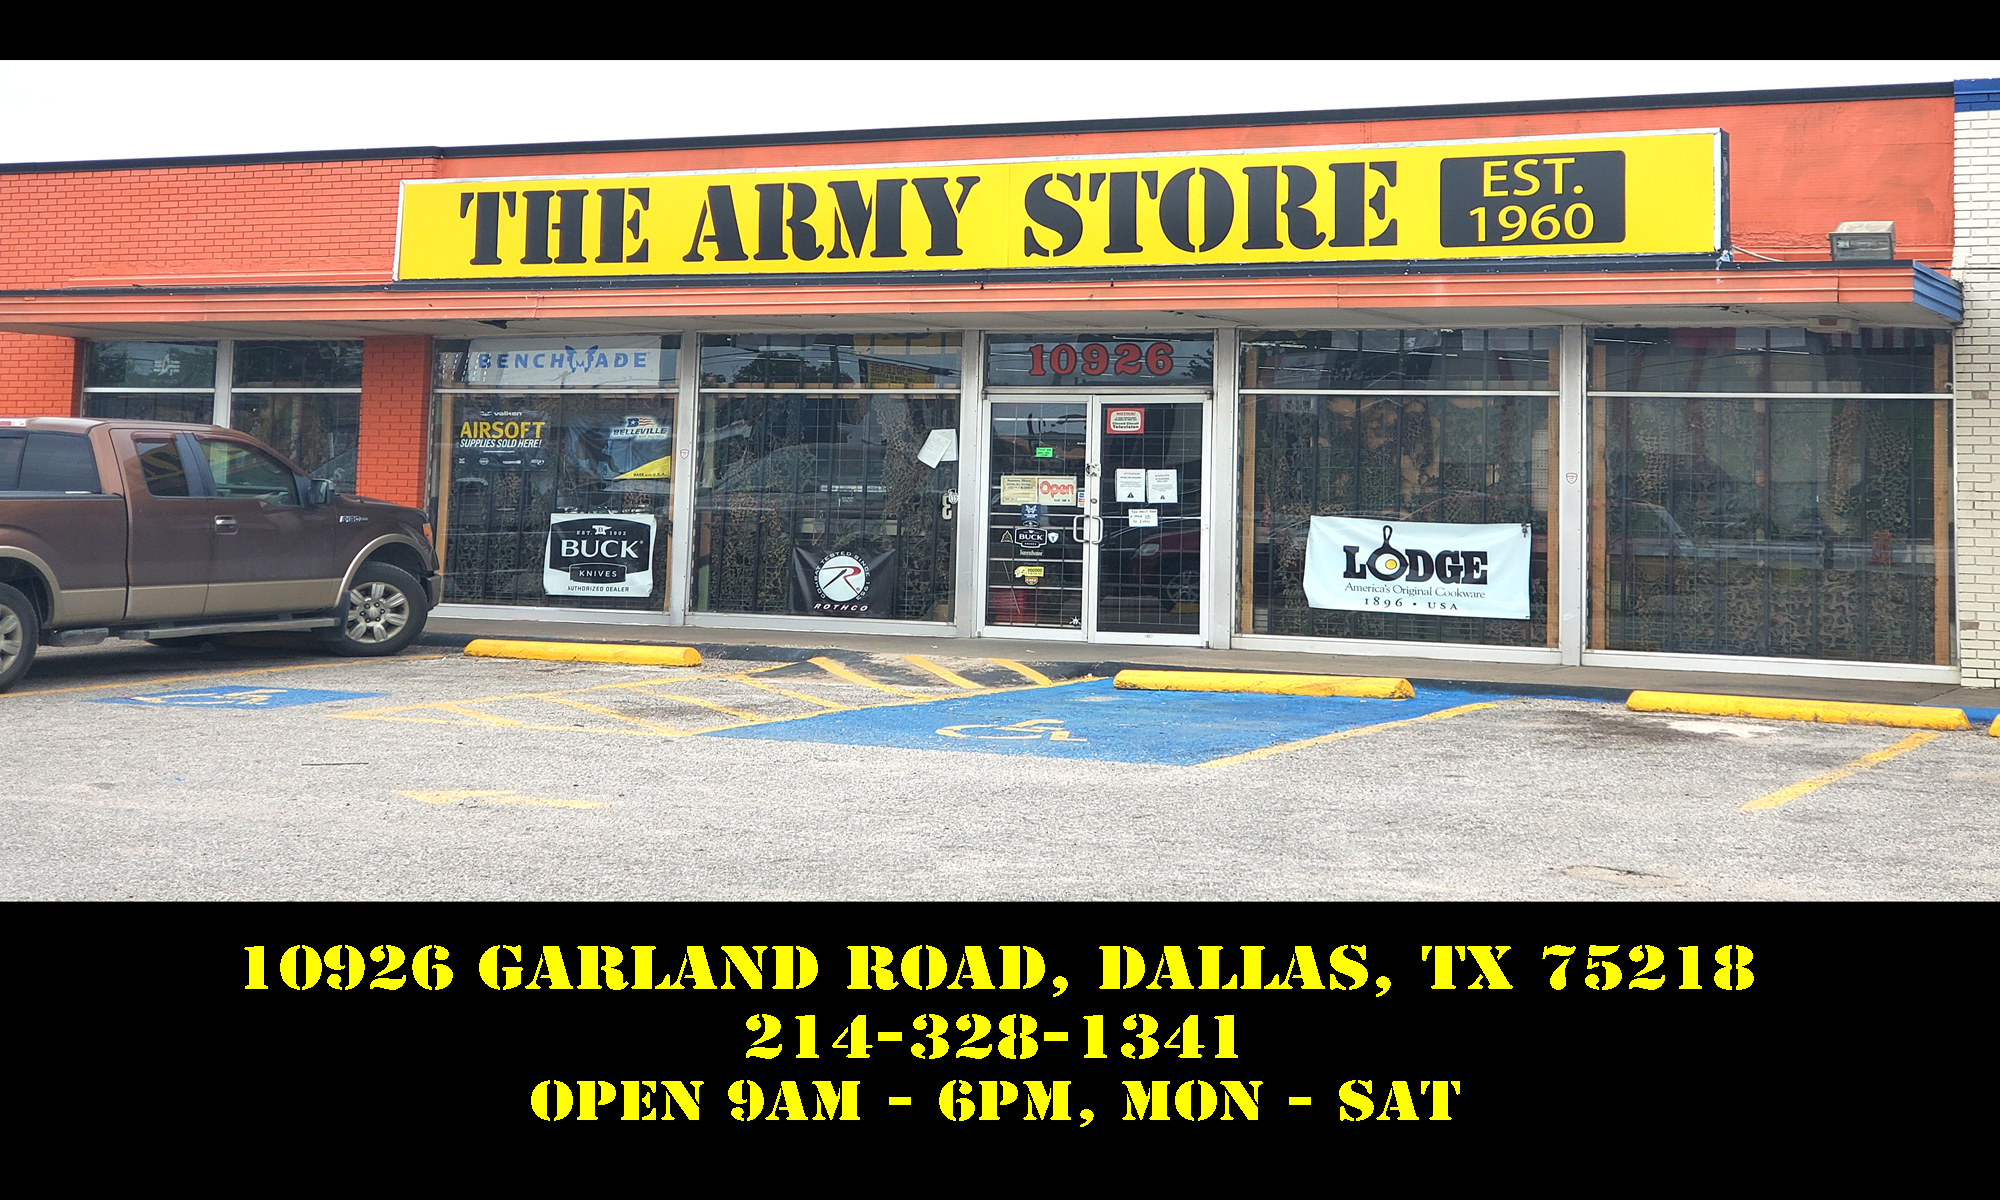 The Army Store